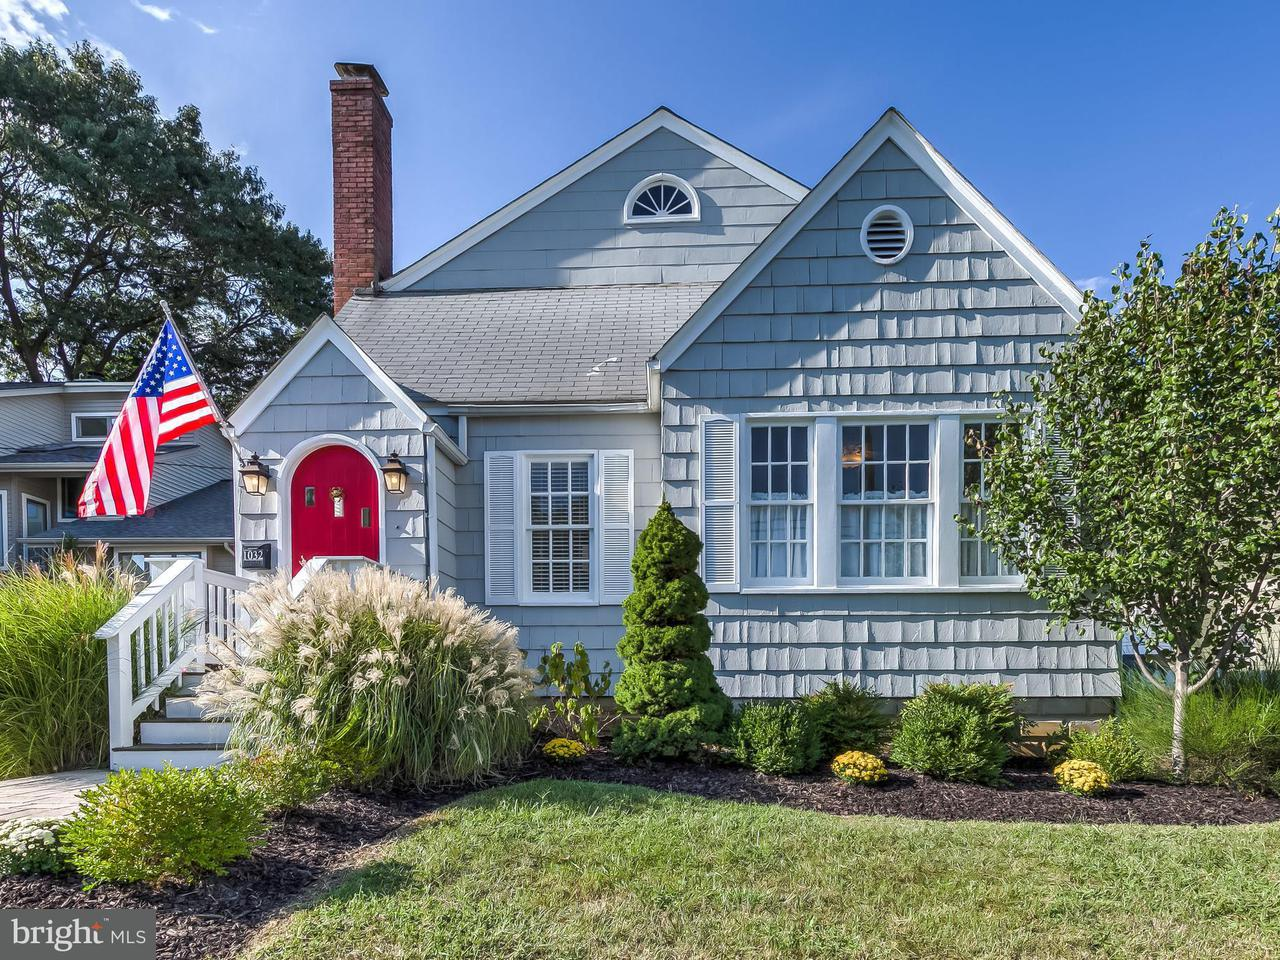 Single Family Home for Sale at 1032 BOUCHER Avenue 1032 BOUCHER Avenue Annapolis, Maryland 21403 United States